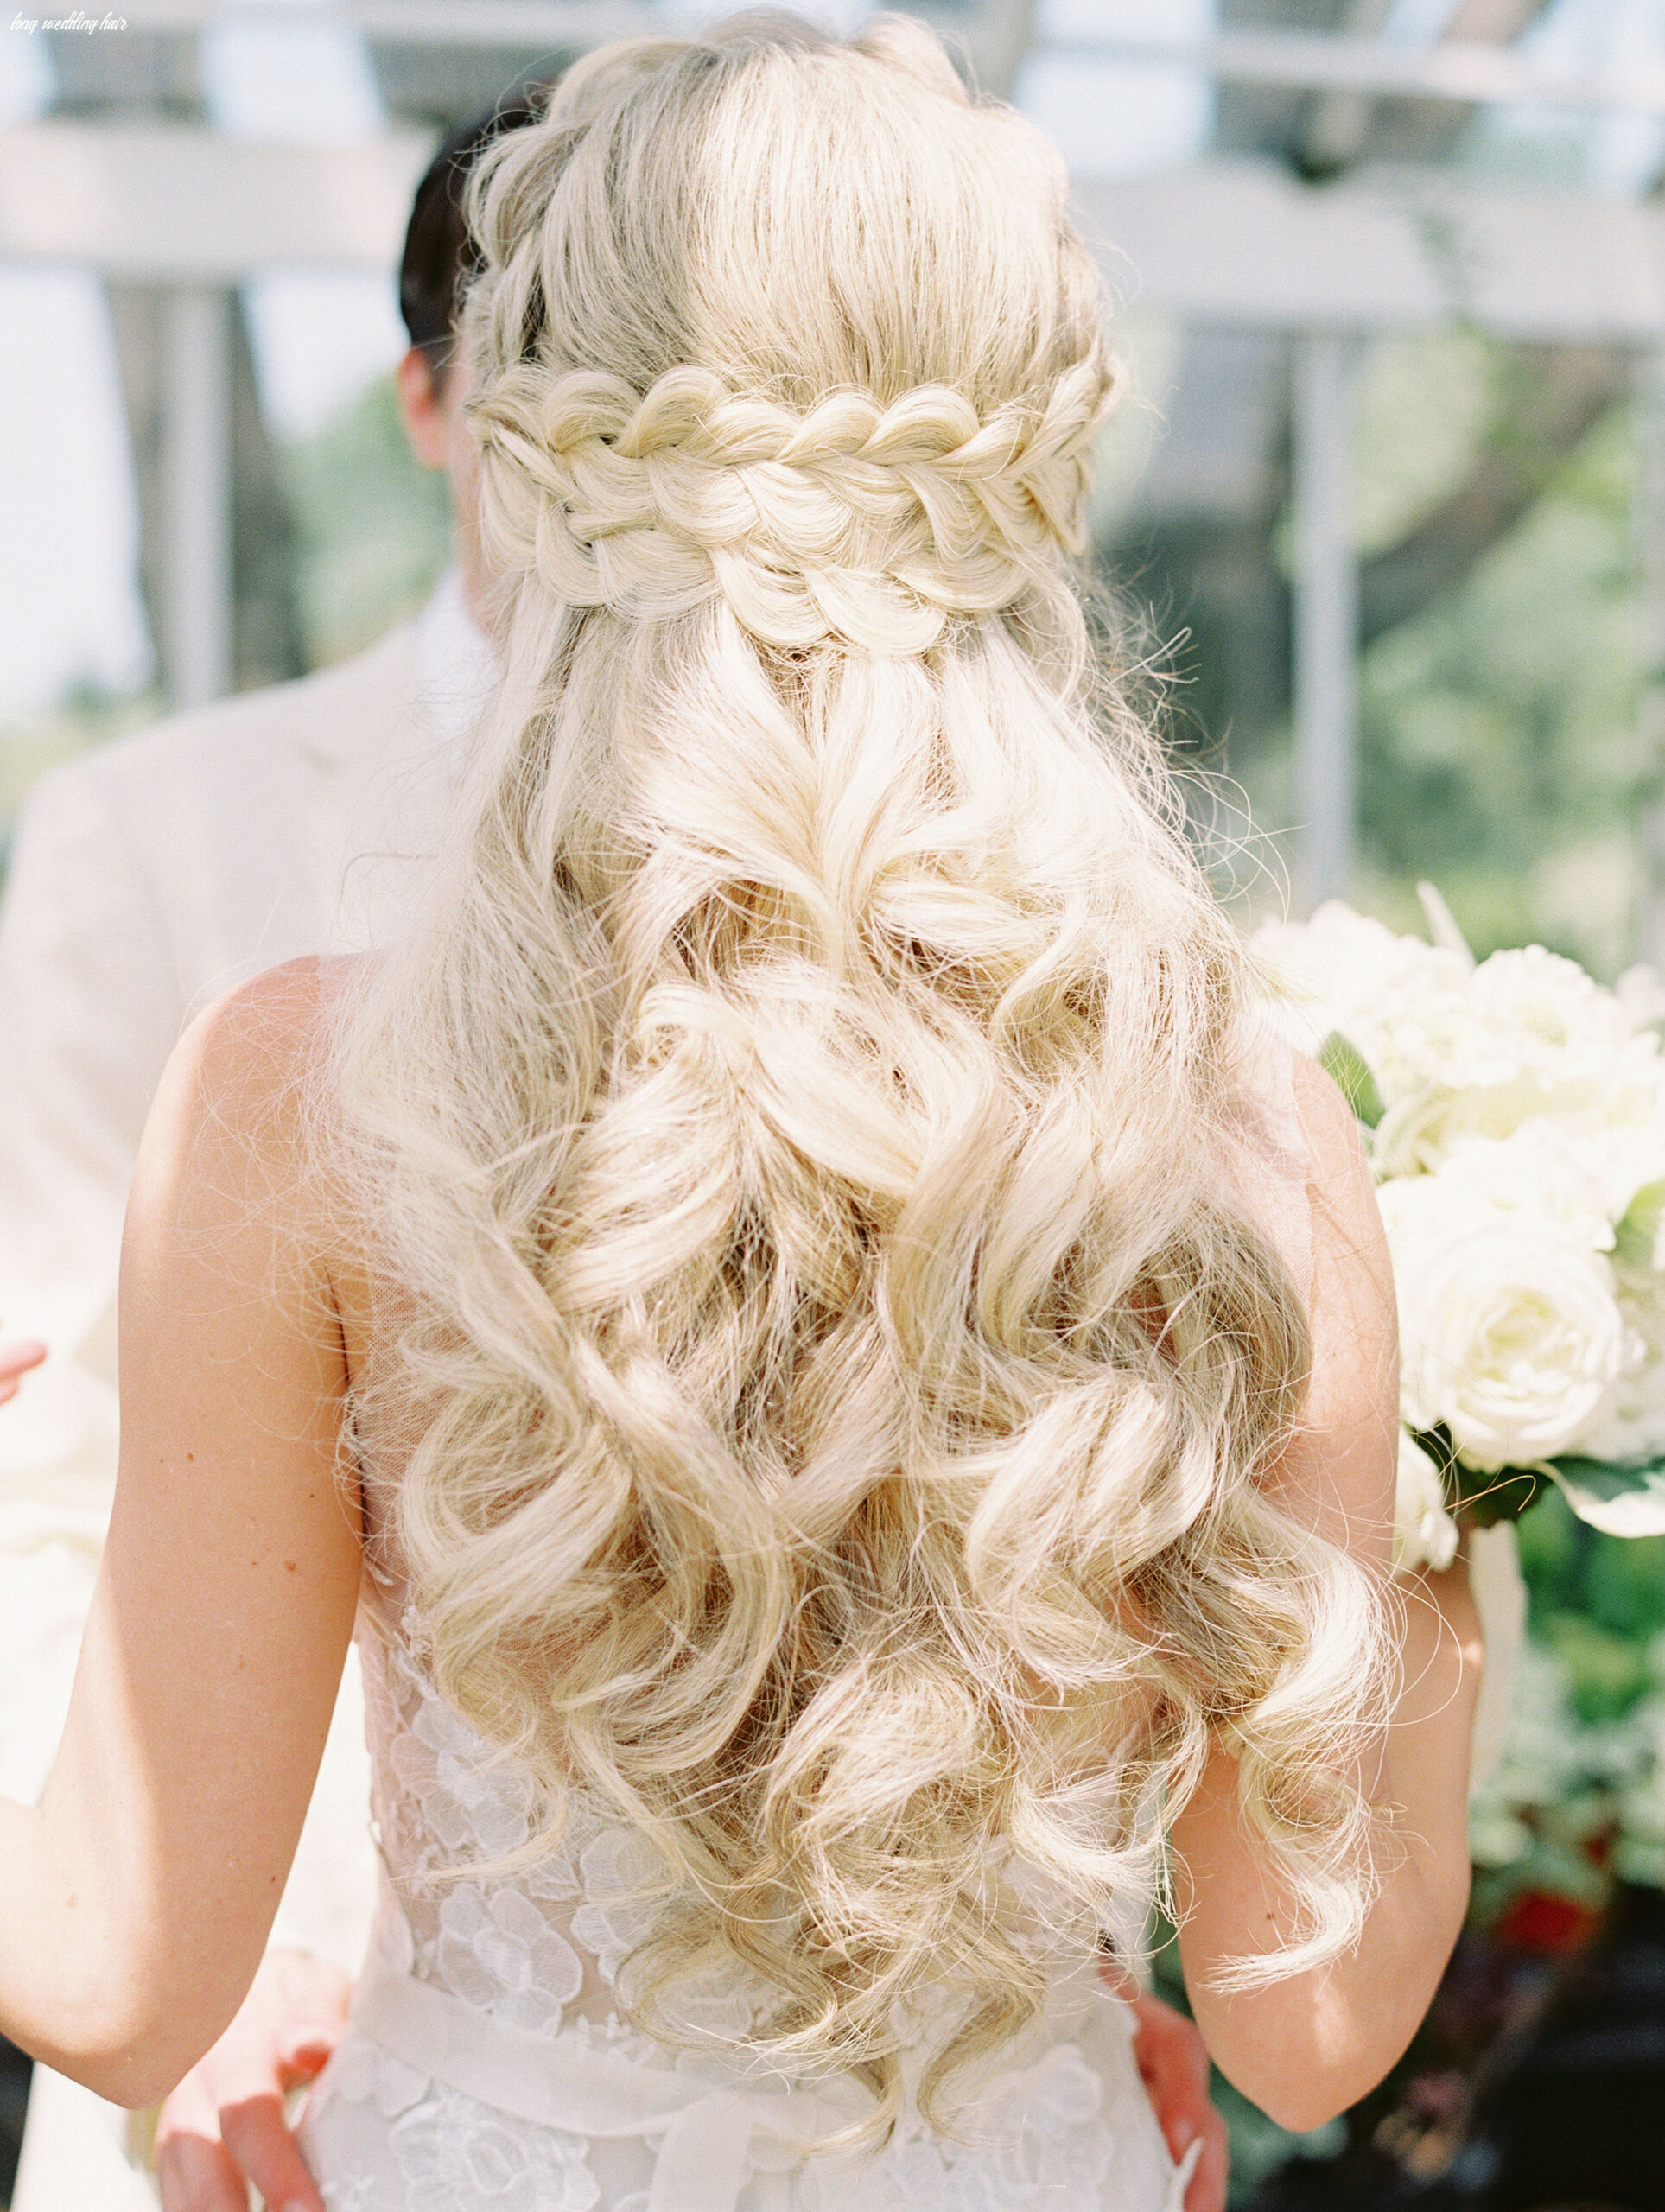 8 pretty wedding hairstyles for brides with long hair   martha